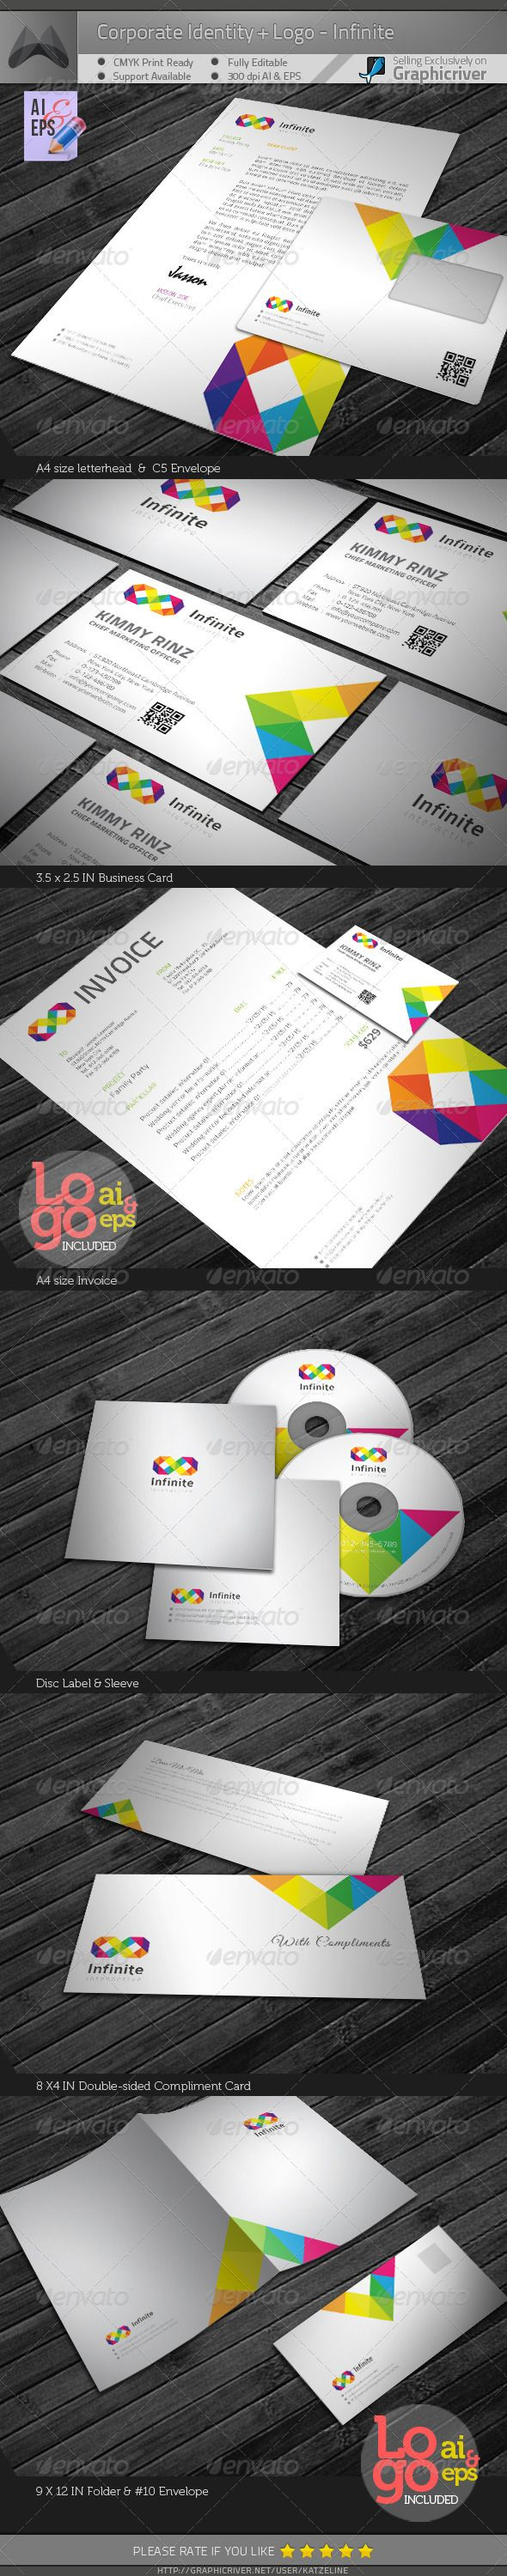 Corporate Identity Package - Infinite  #GraphicRiver        Corporate Identity Package – 'Infinite' contains:  1. Letterhead : A4 size   2. Invoice : A4 size   3. Business Card : 3.5X2.5 in   4. C5 Envelope   5. #10 Envelope   6. Disk Label   7. Disk Sleeve   8. Compliments: 8X4 in   9. Presentation Folder: 9×12in  300dpi CMYK Print Ready + 0.25in bleed  Adobe AI CS4 & EPS 10.0  Logo Included (AI & EPS)__Please the 'Screenshots' to see the Logo Preview  Exclusive on Graphicriver Only  Font…